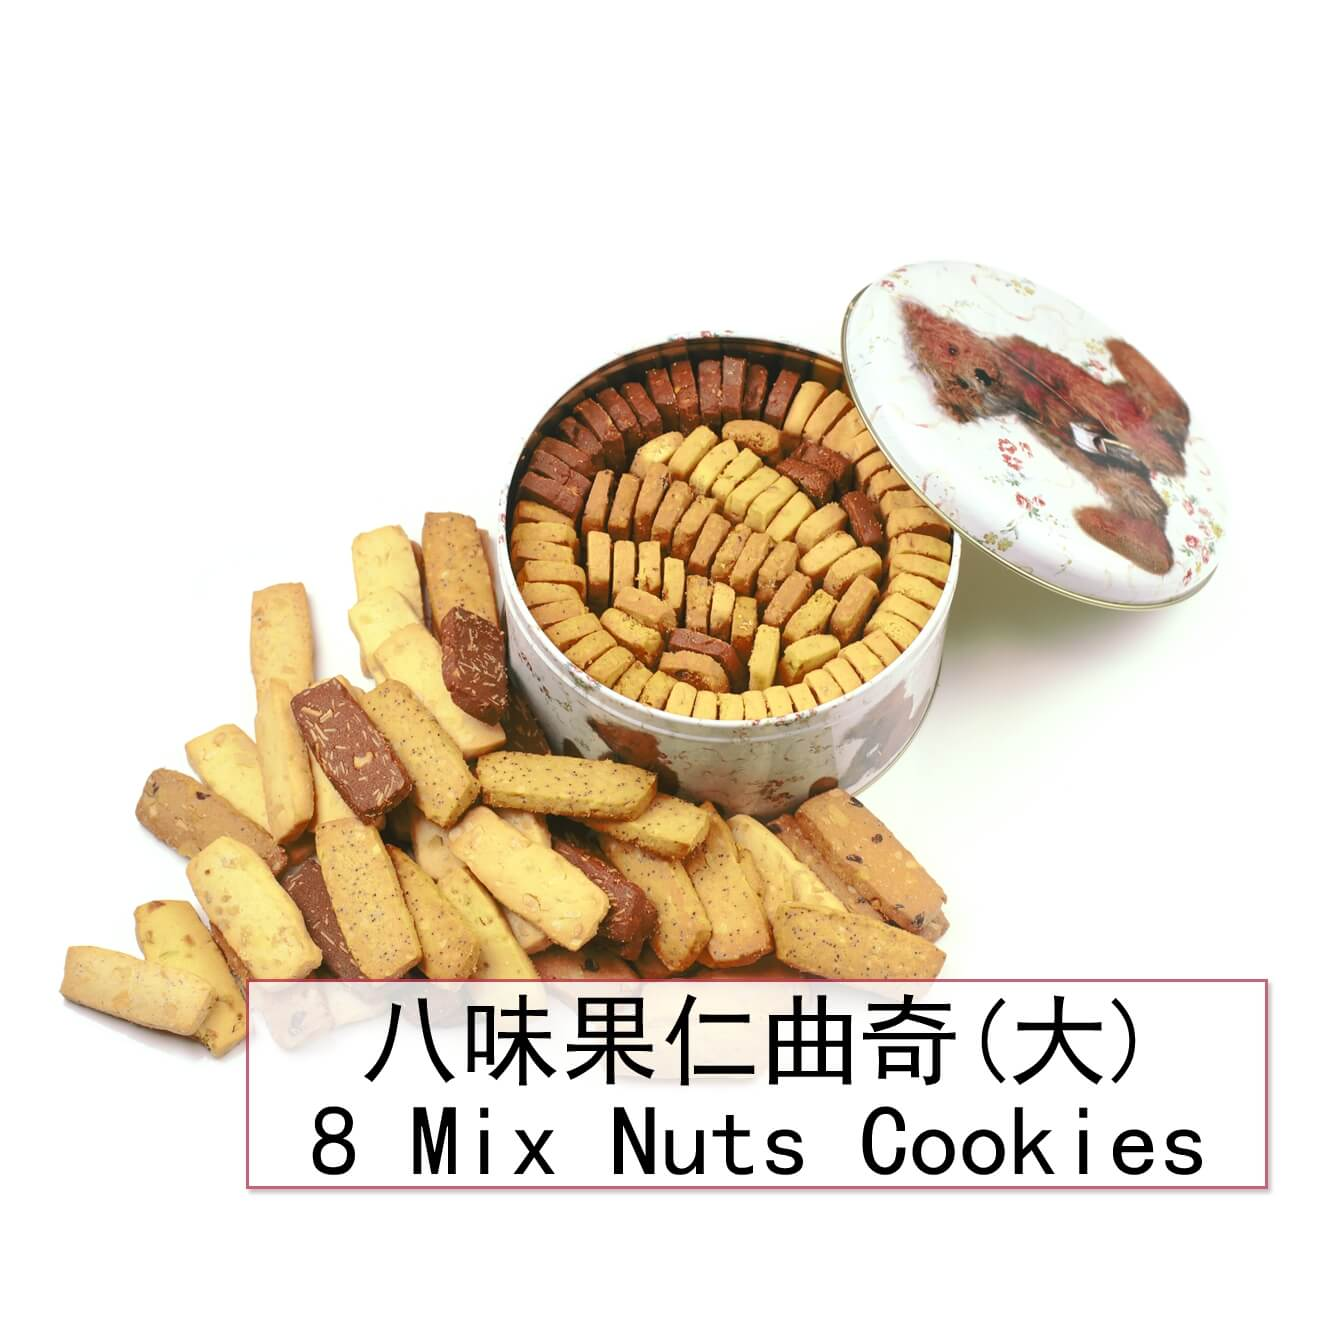 8Mix Nut Cookies Large